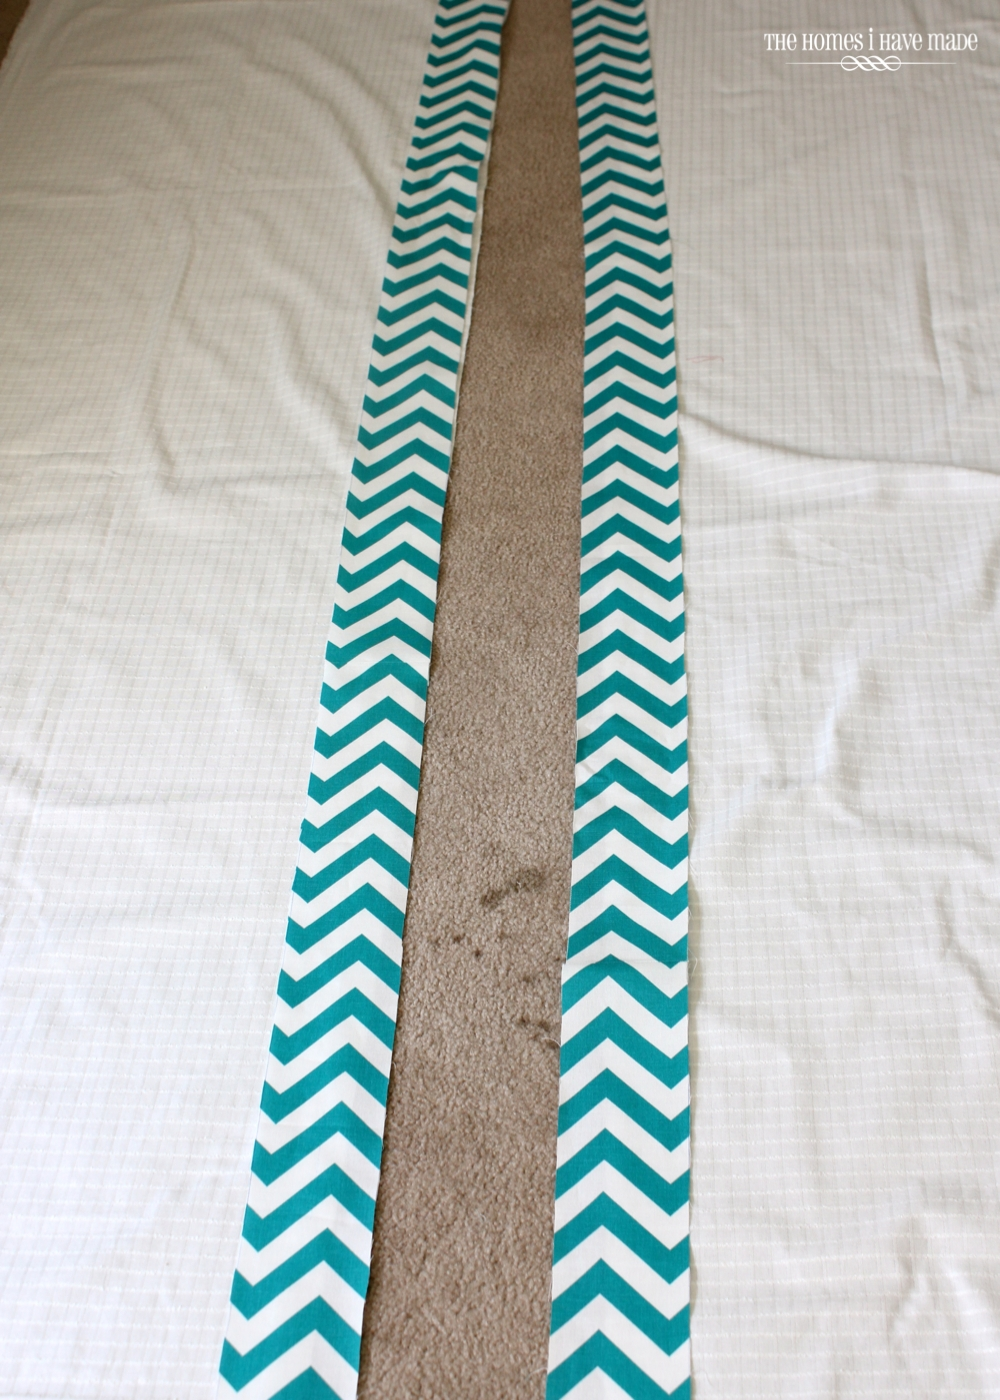 Chevron Edged Curtains-013